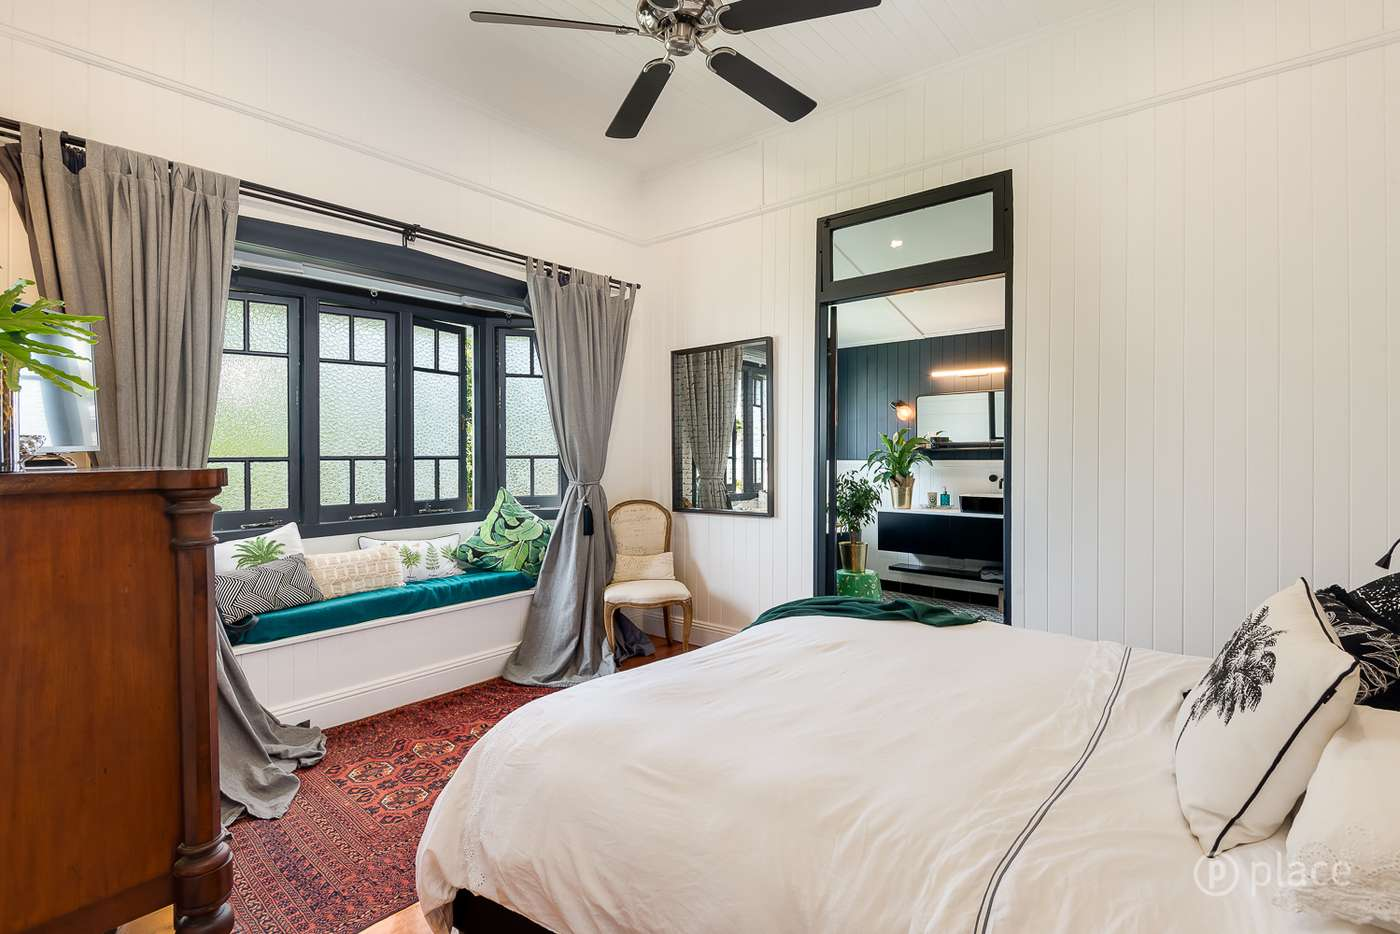 Fifth view of Homely house listing, 25 Munro Street, Auchenflower QLD 4066